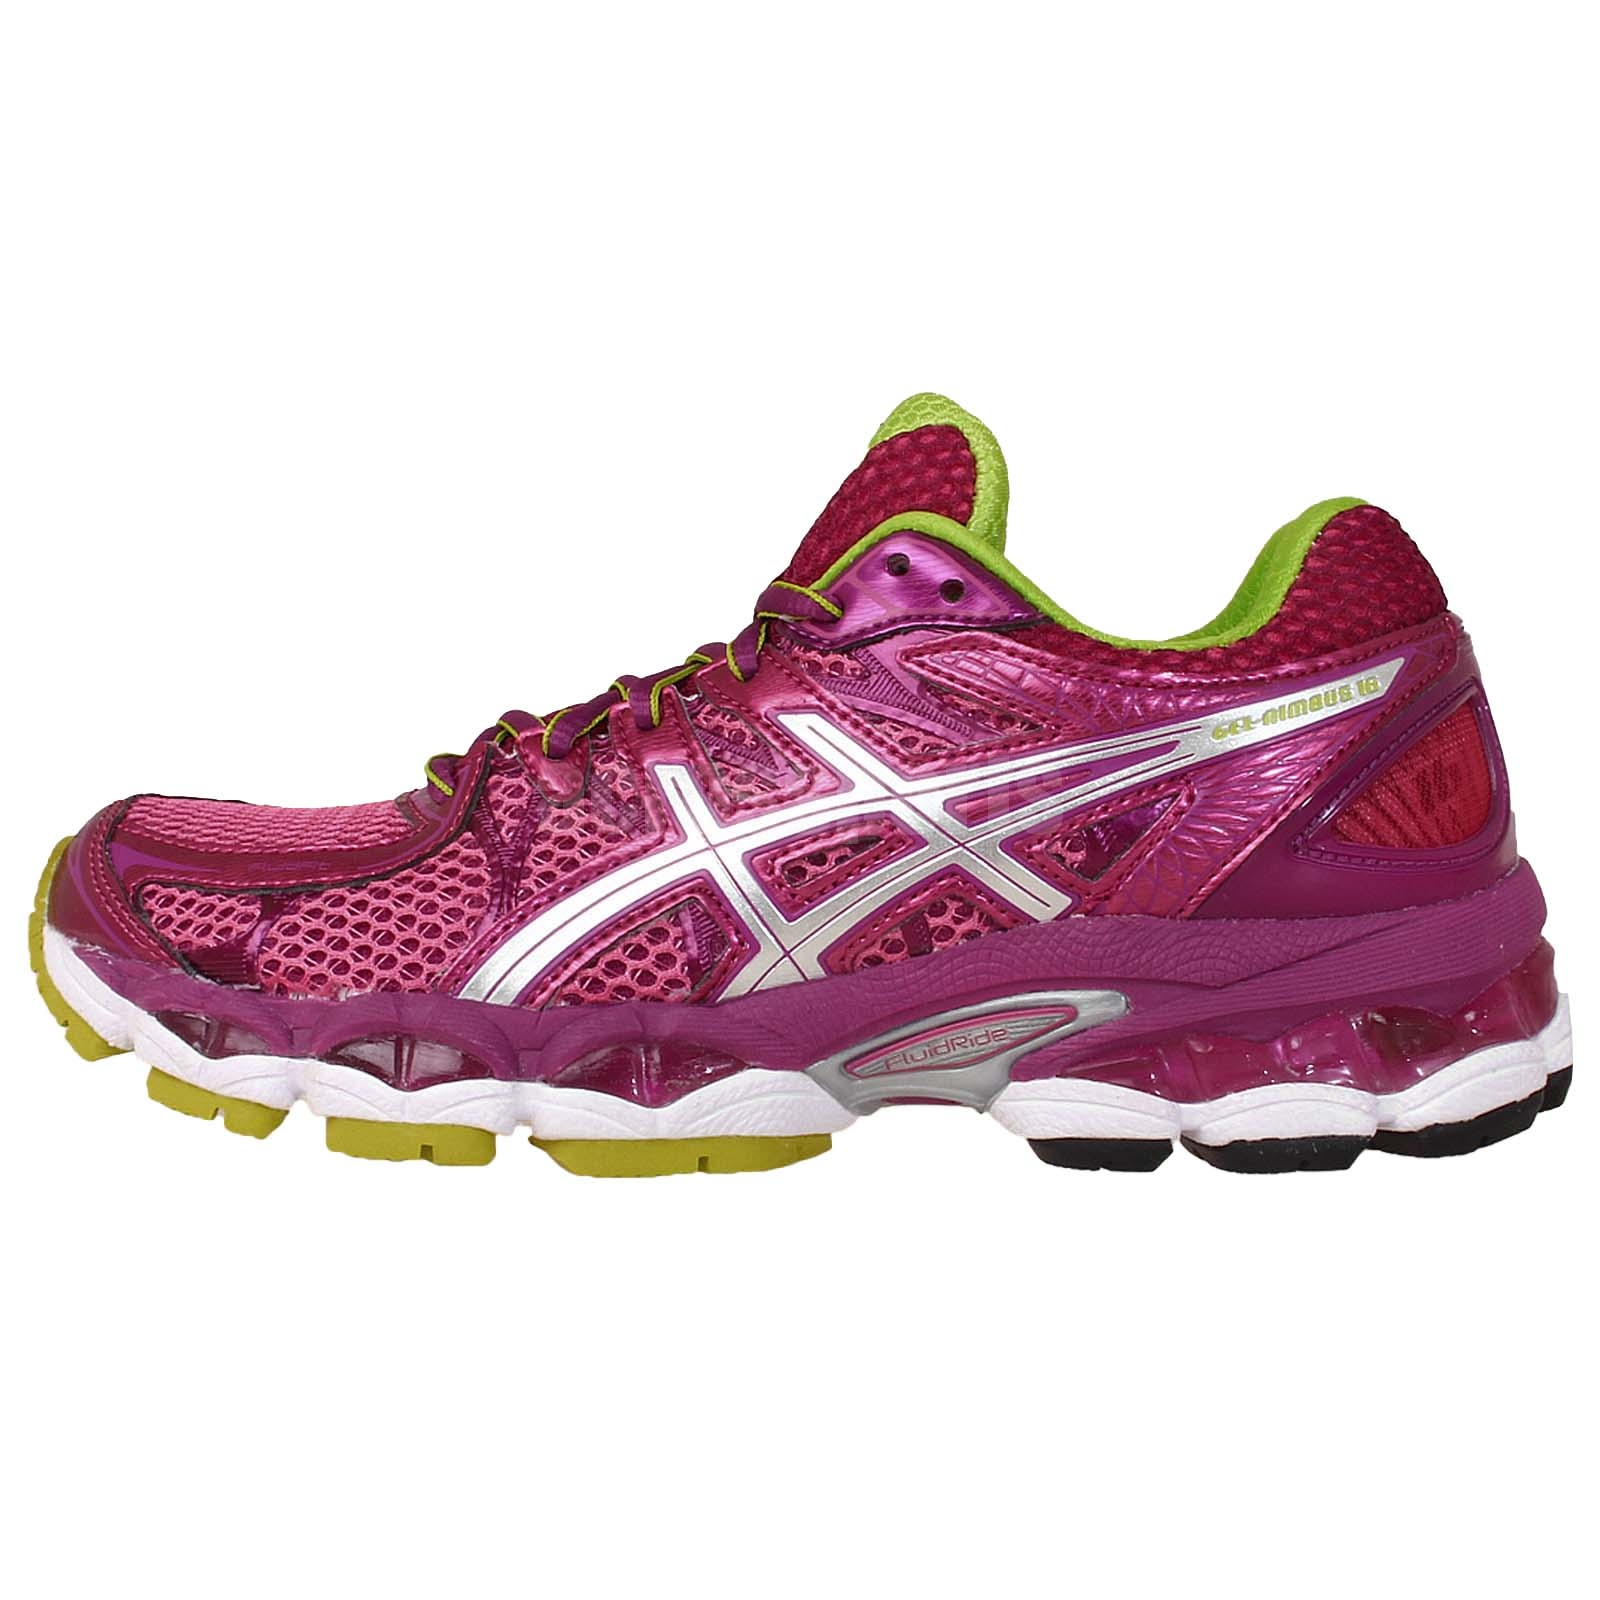 Womens Running Shoes Asics Paypal